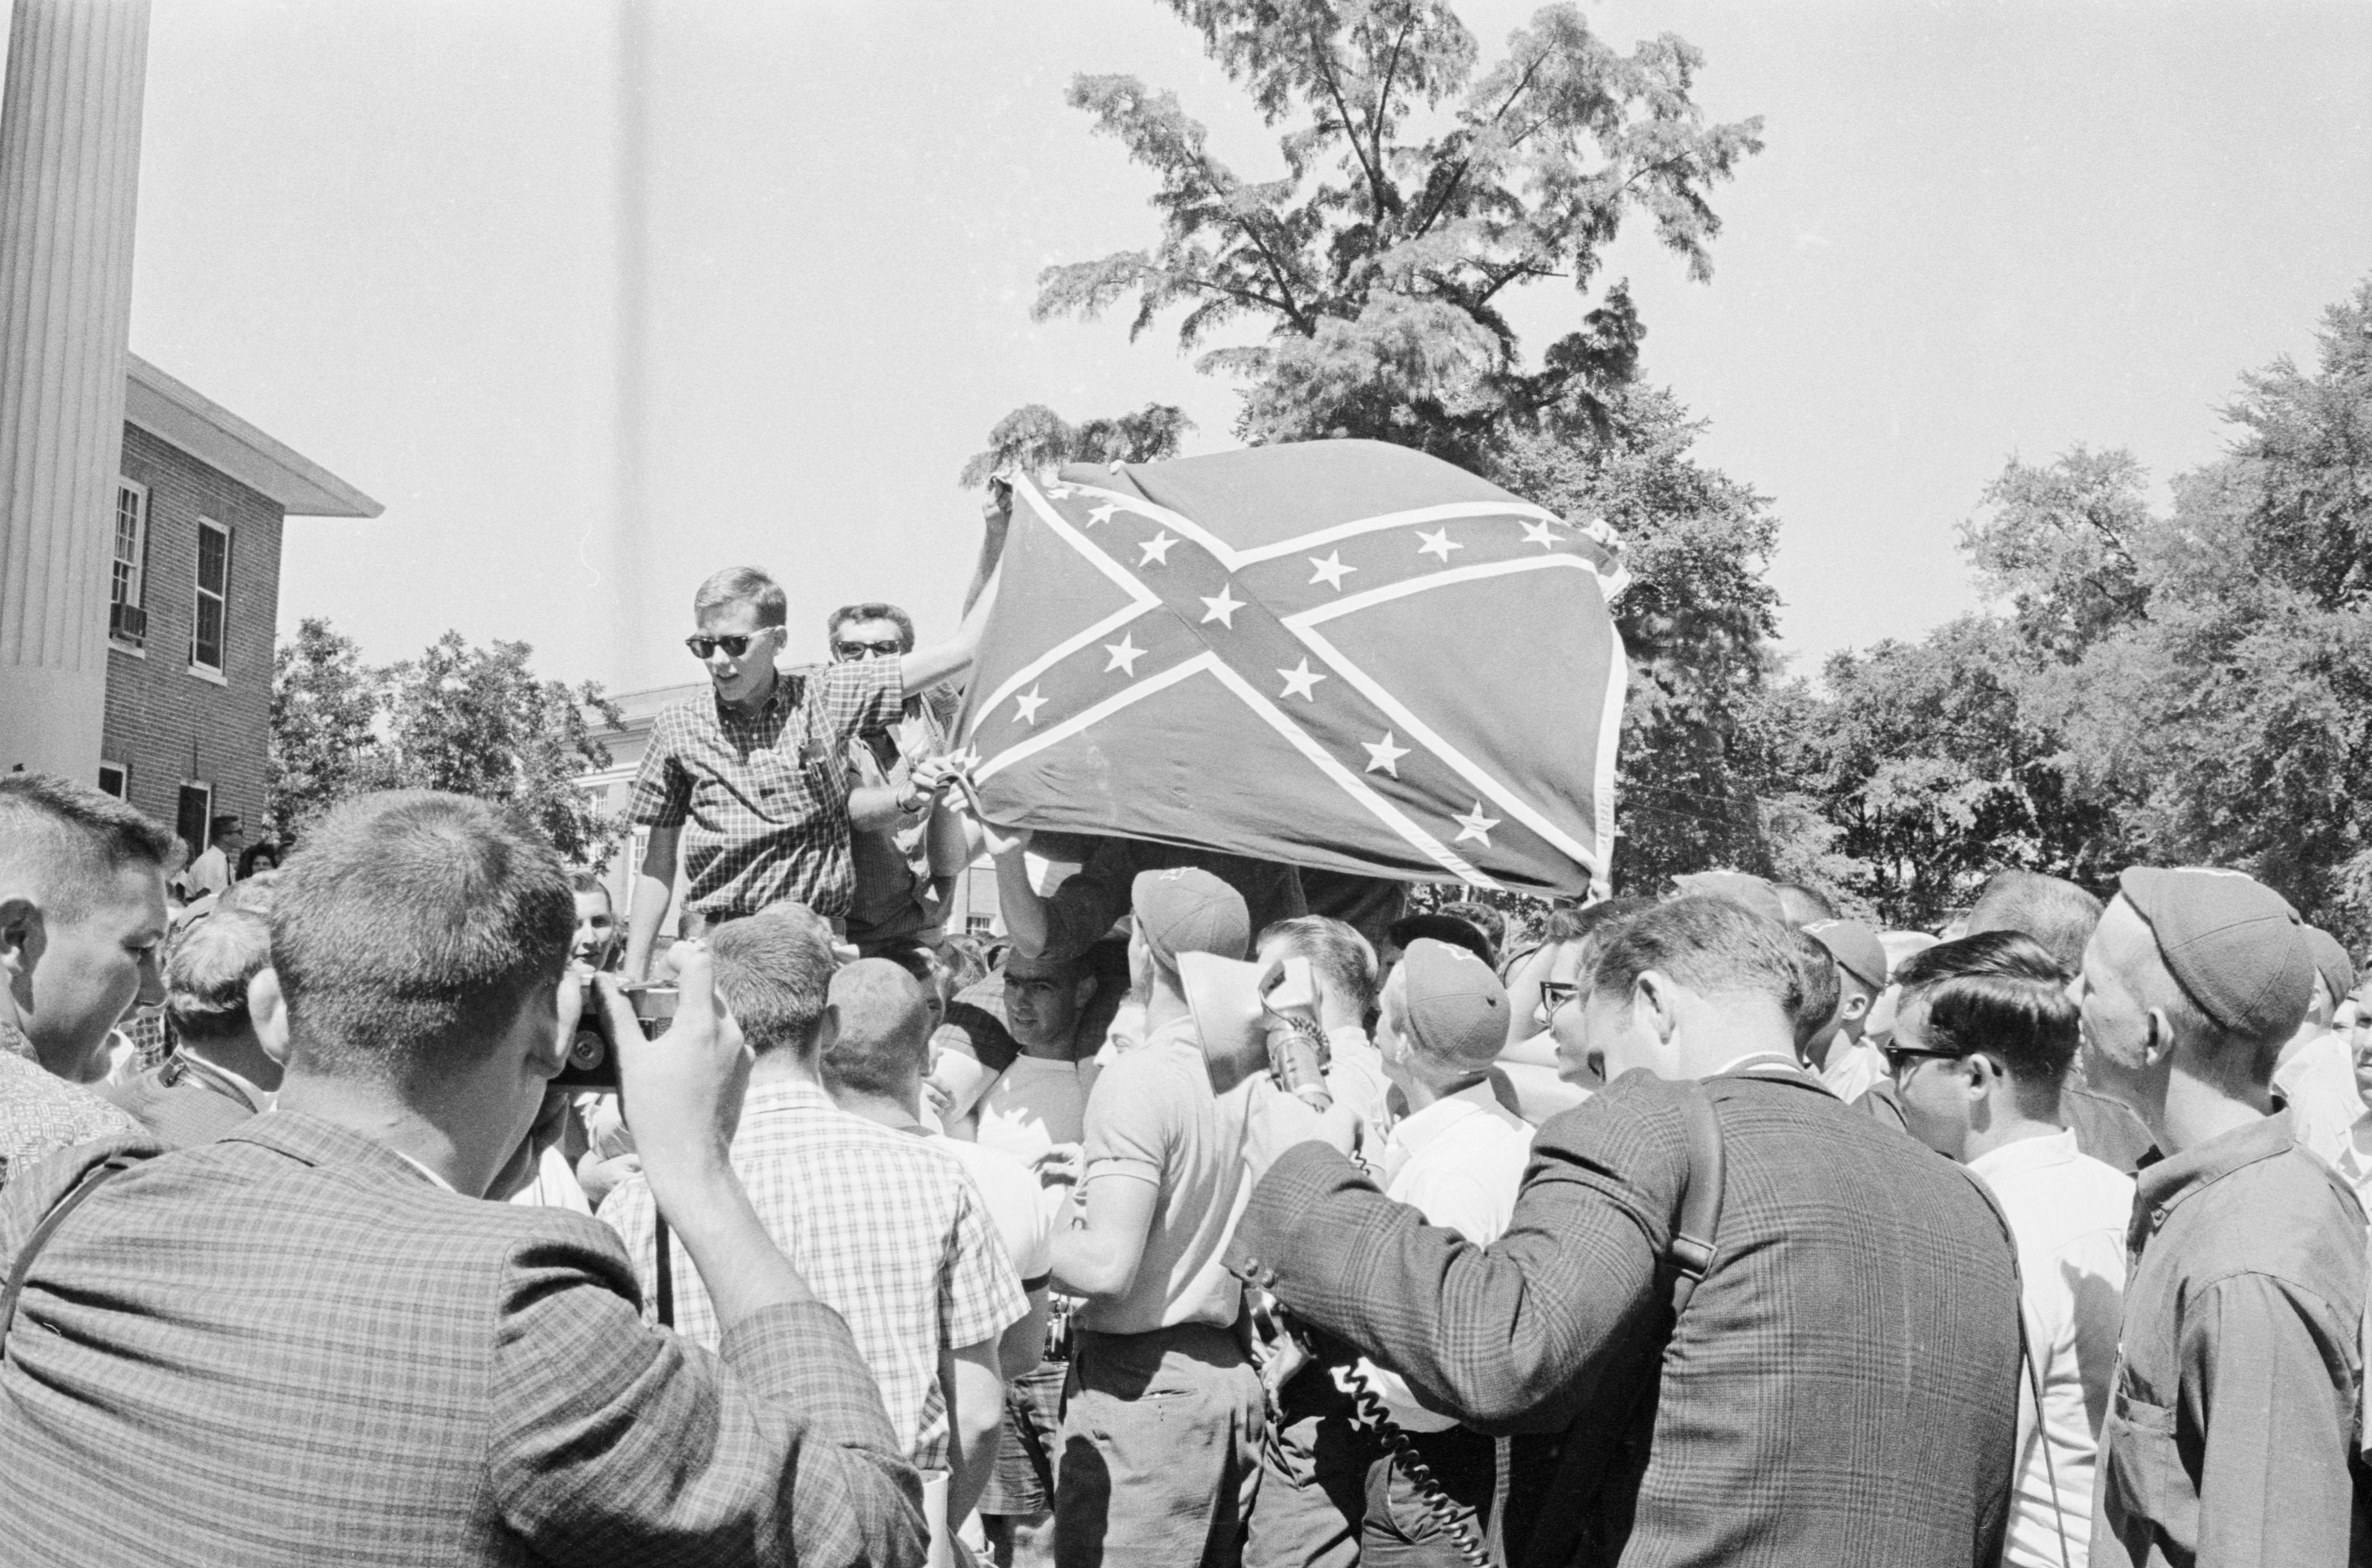 Students hoist a Confederate flag into the air during Ole Miss riot.